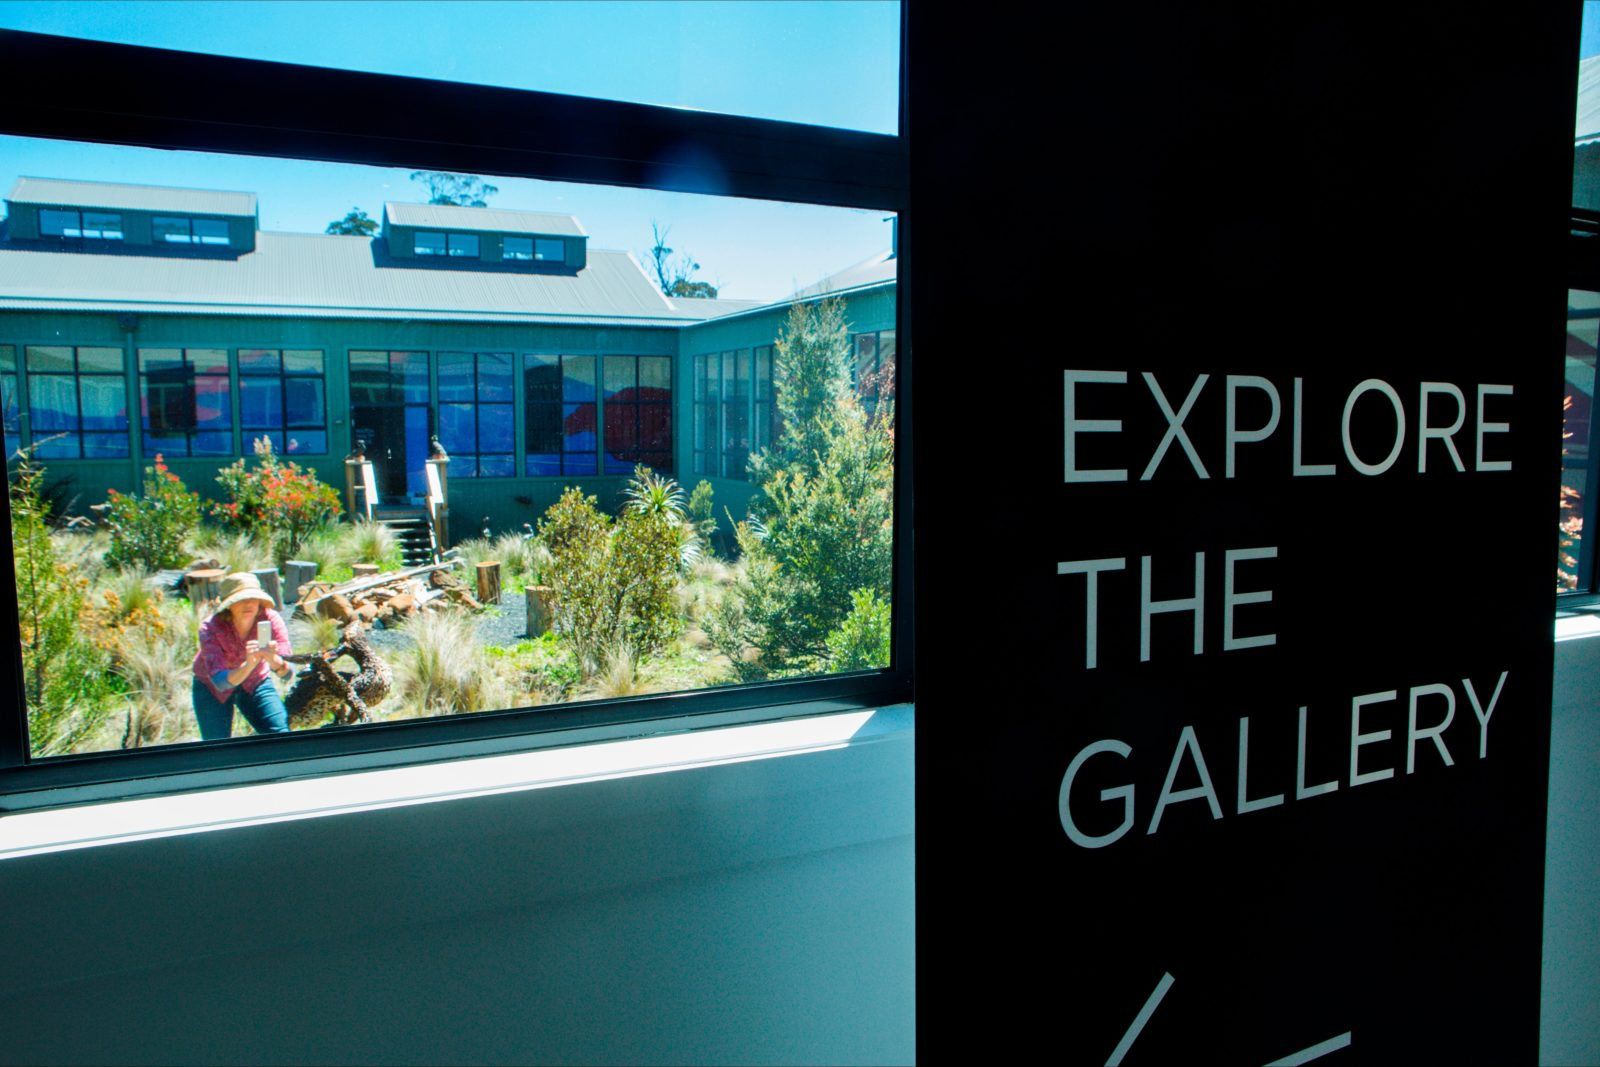 Explore the gallery